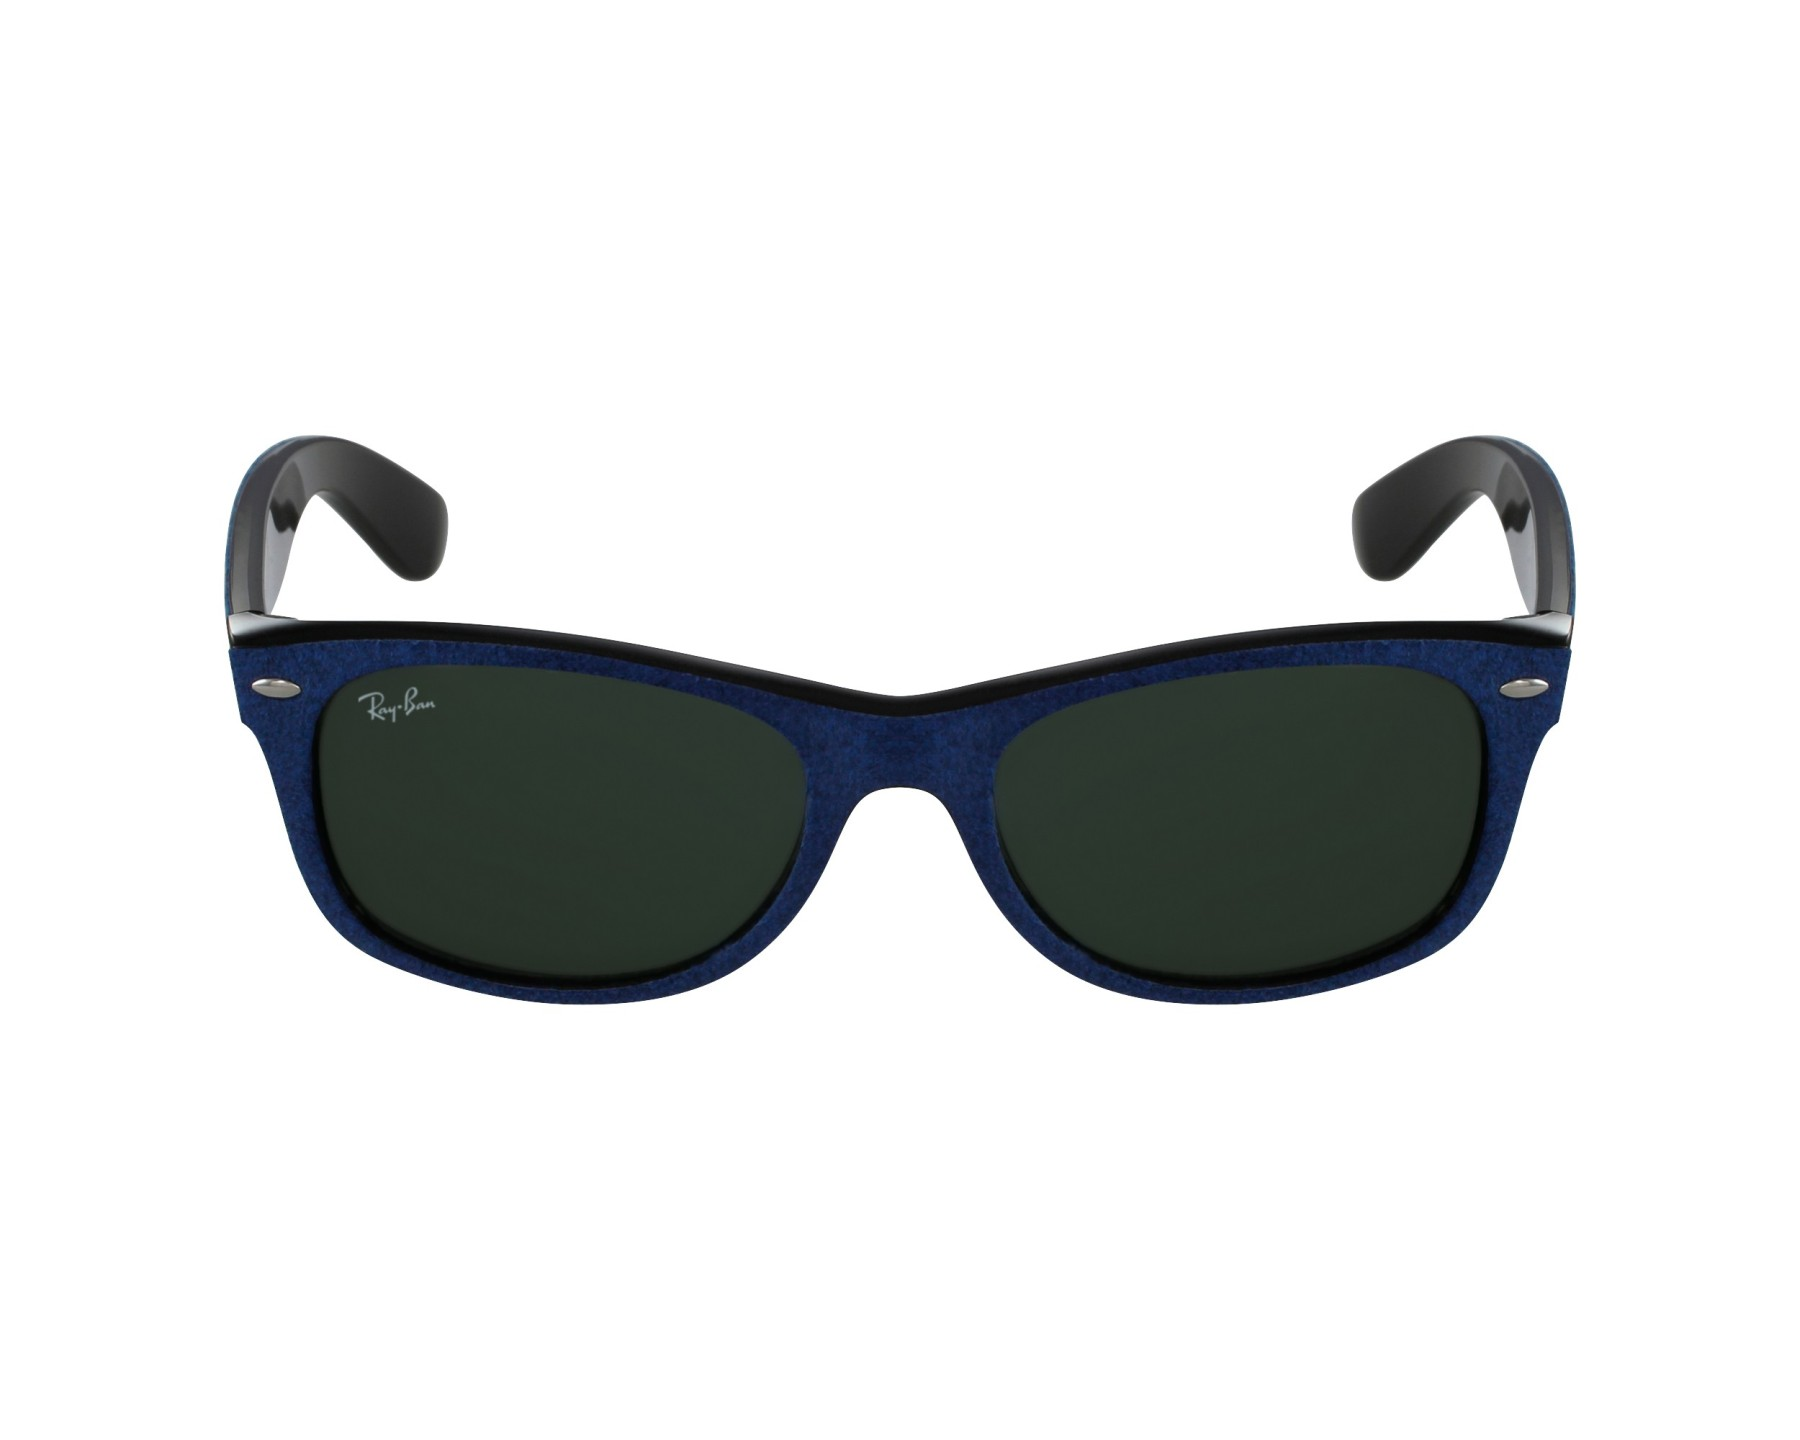 Ray ban sunglasses new design - Ray Ban New Wayfarer Has Been Added To Your Cart